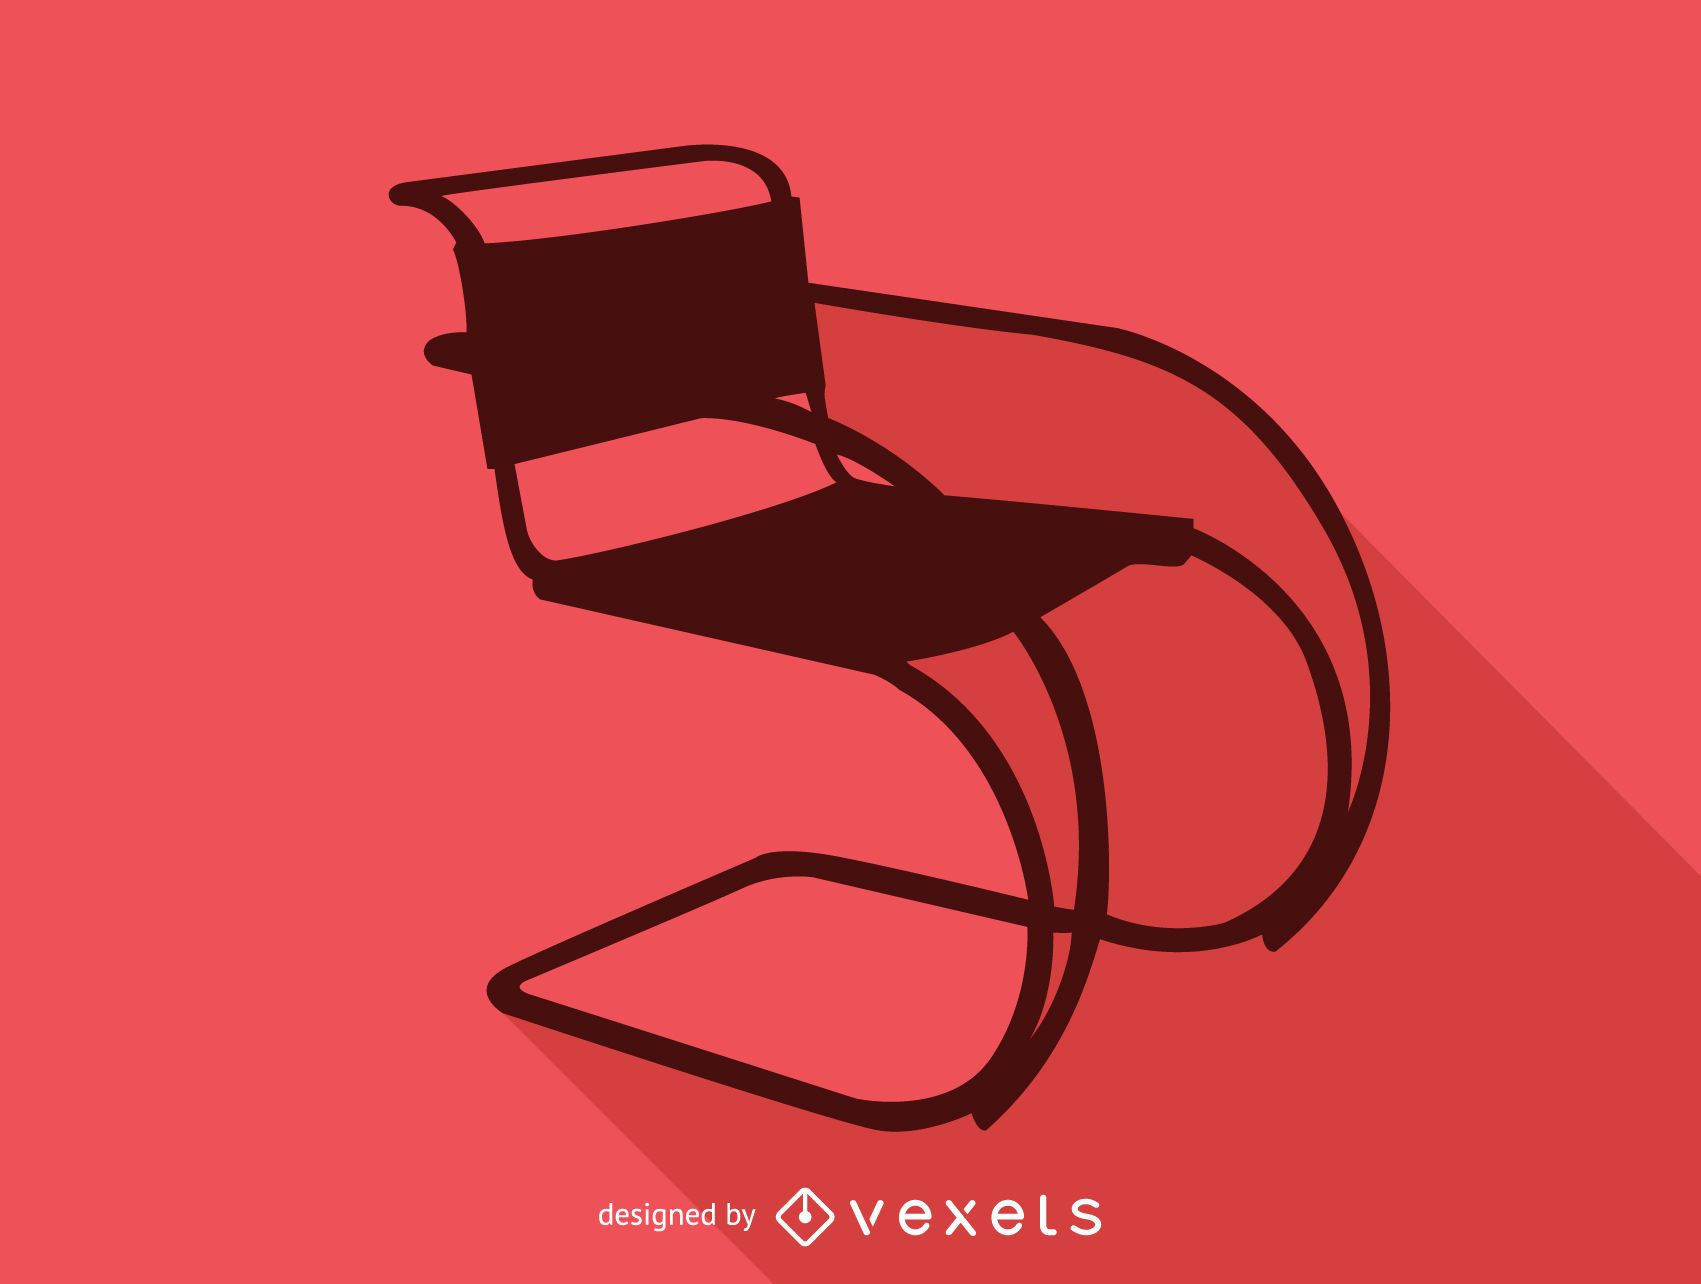 mr 20 cantilever chair silhouette